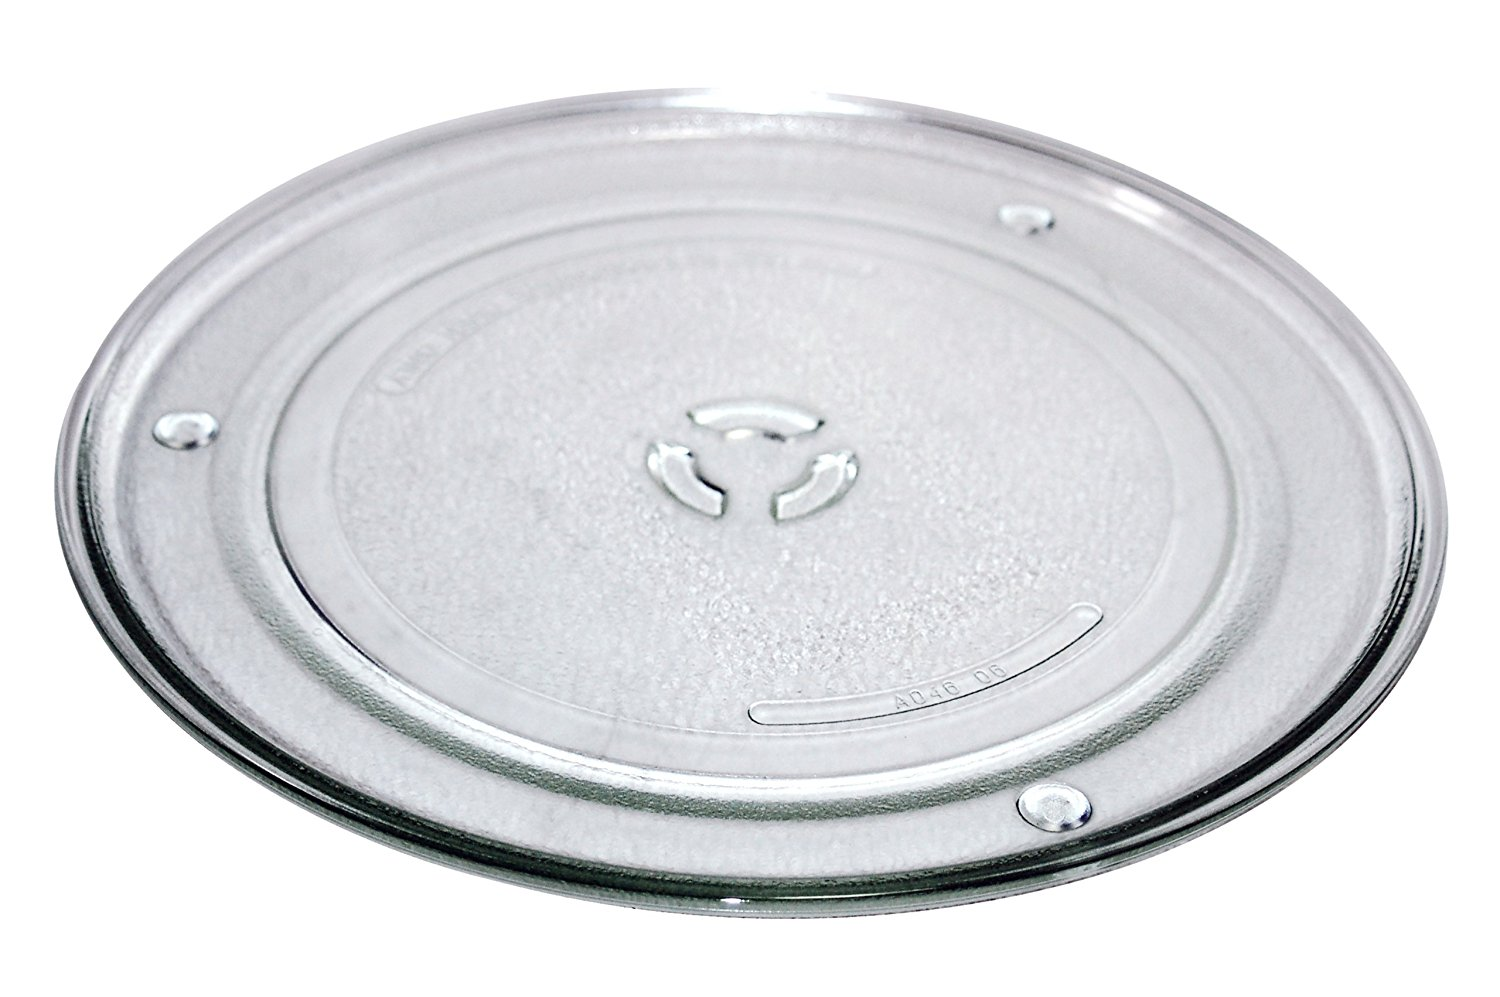 microwave turntable not turning causes